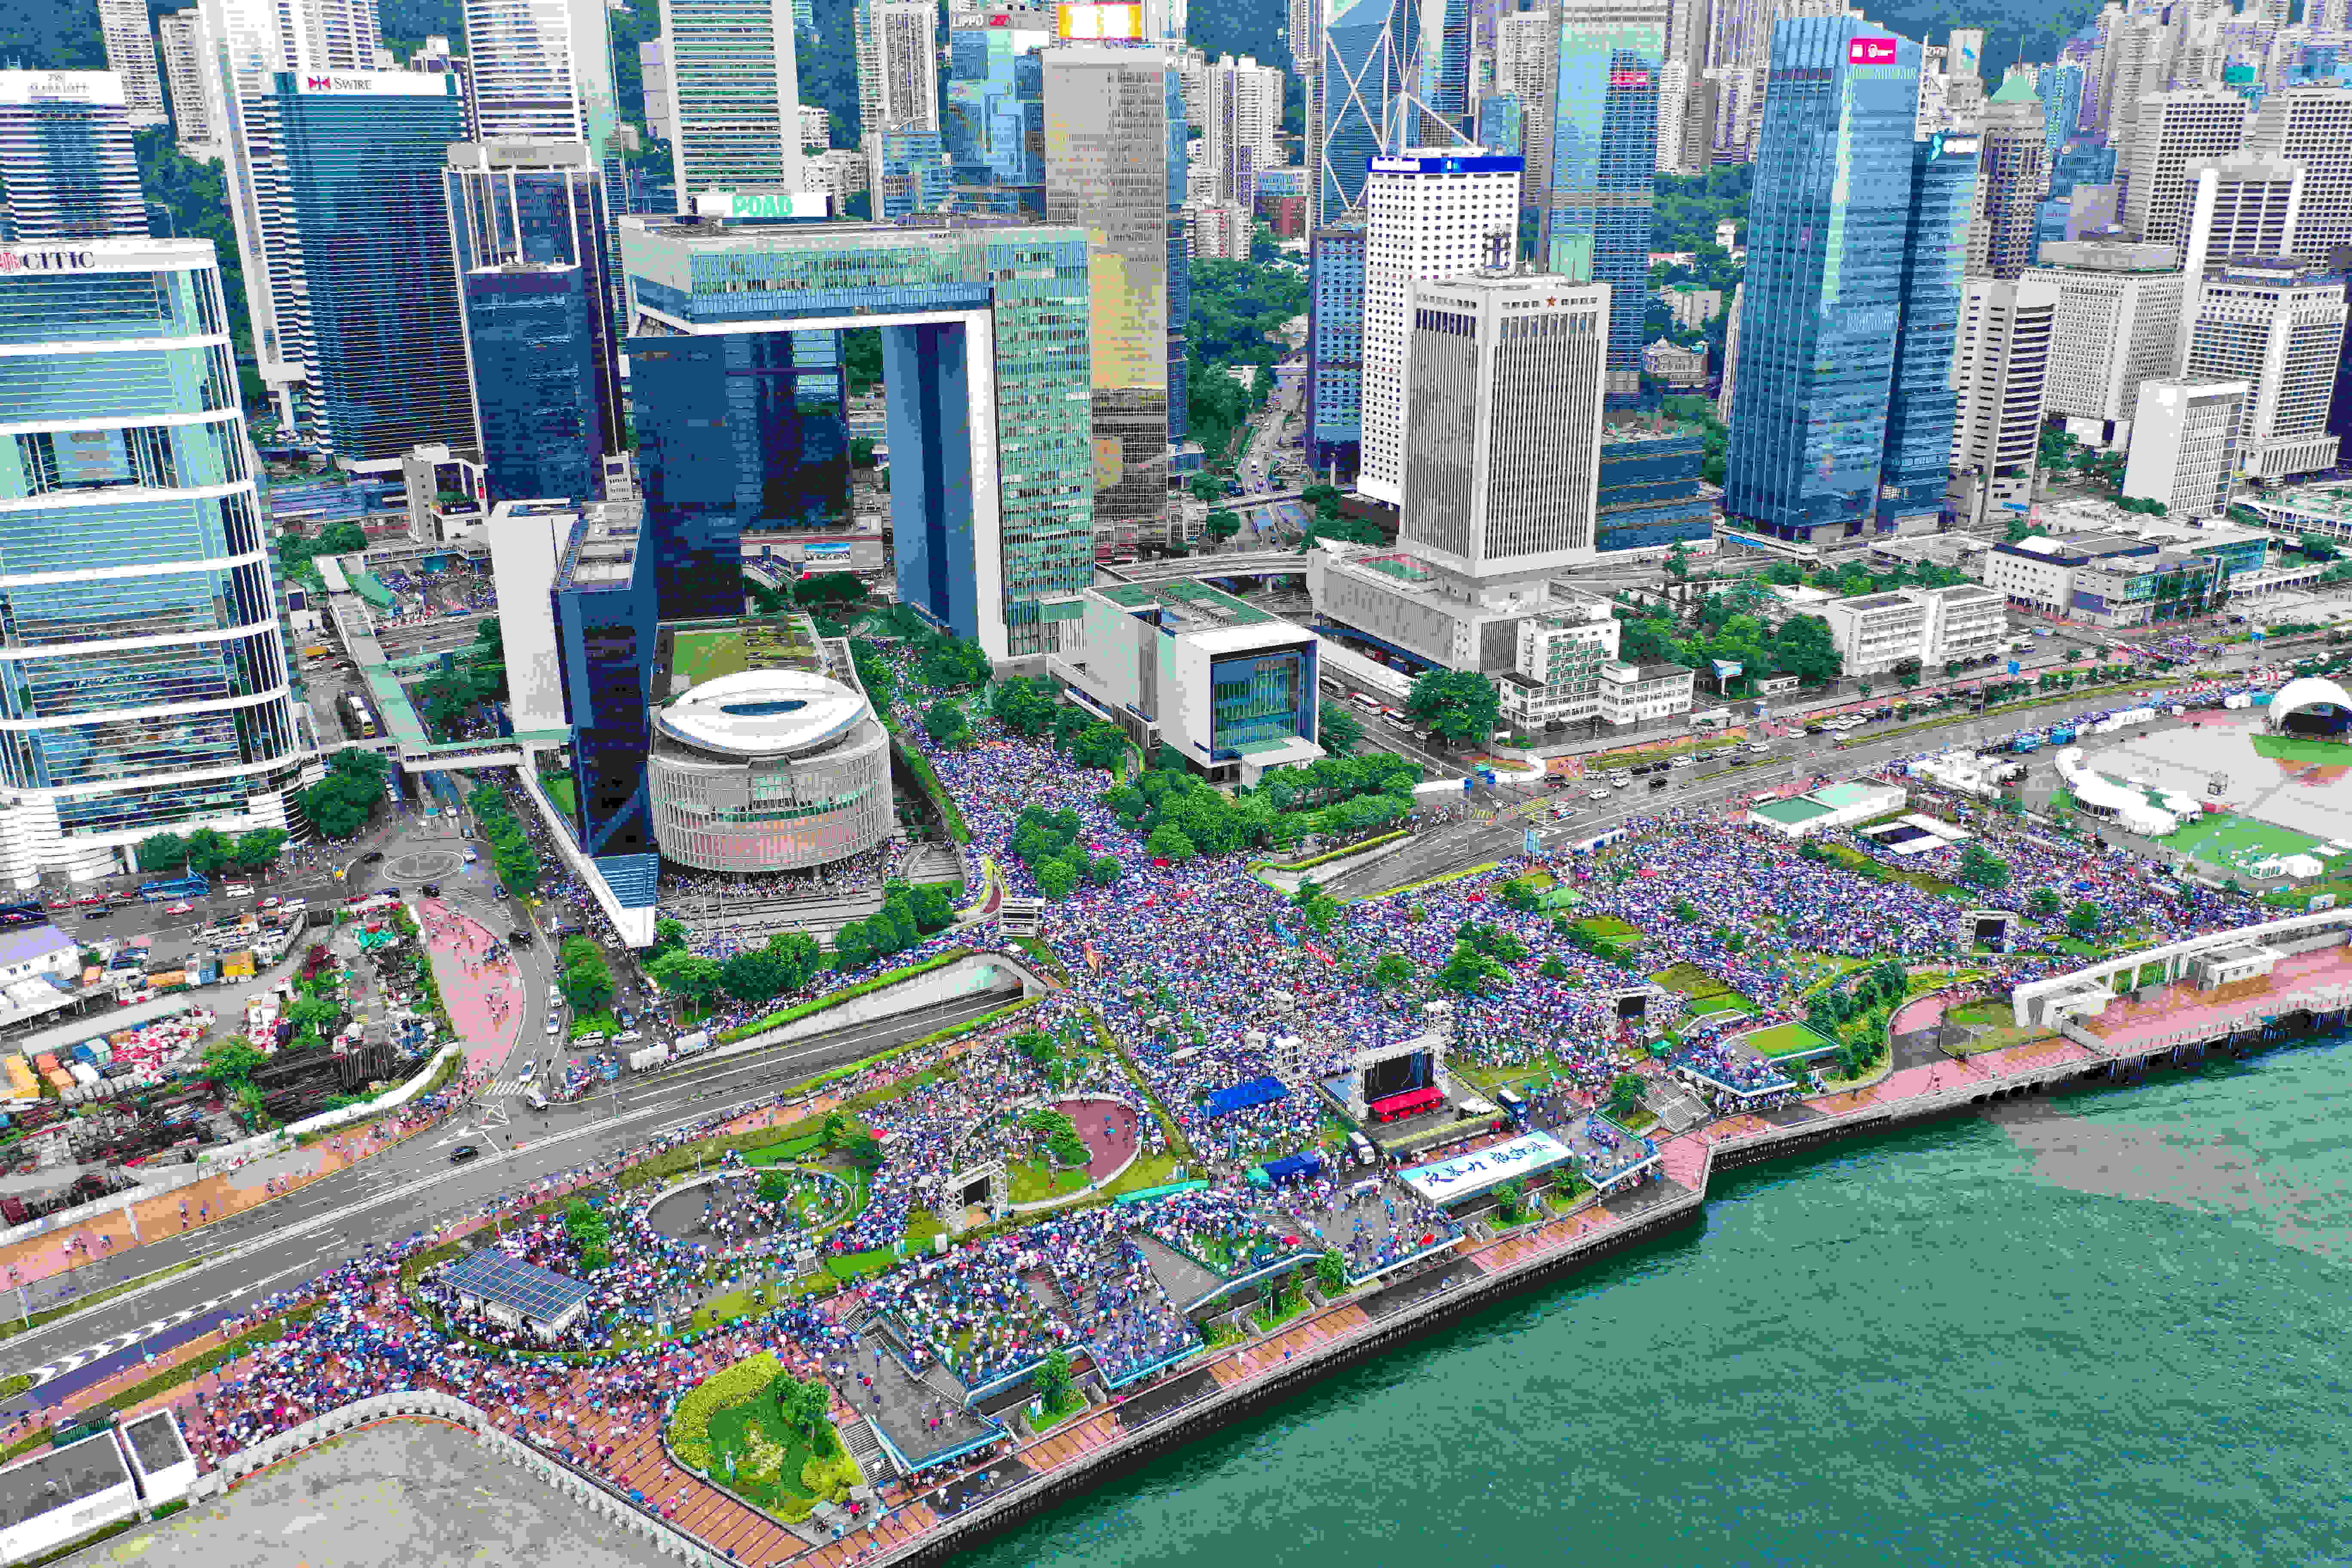 Western countries have no right to interfere in Hong Kong affairs